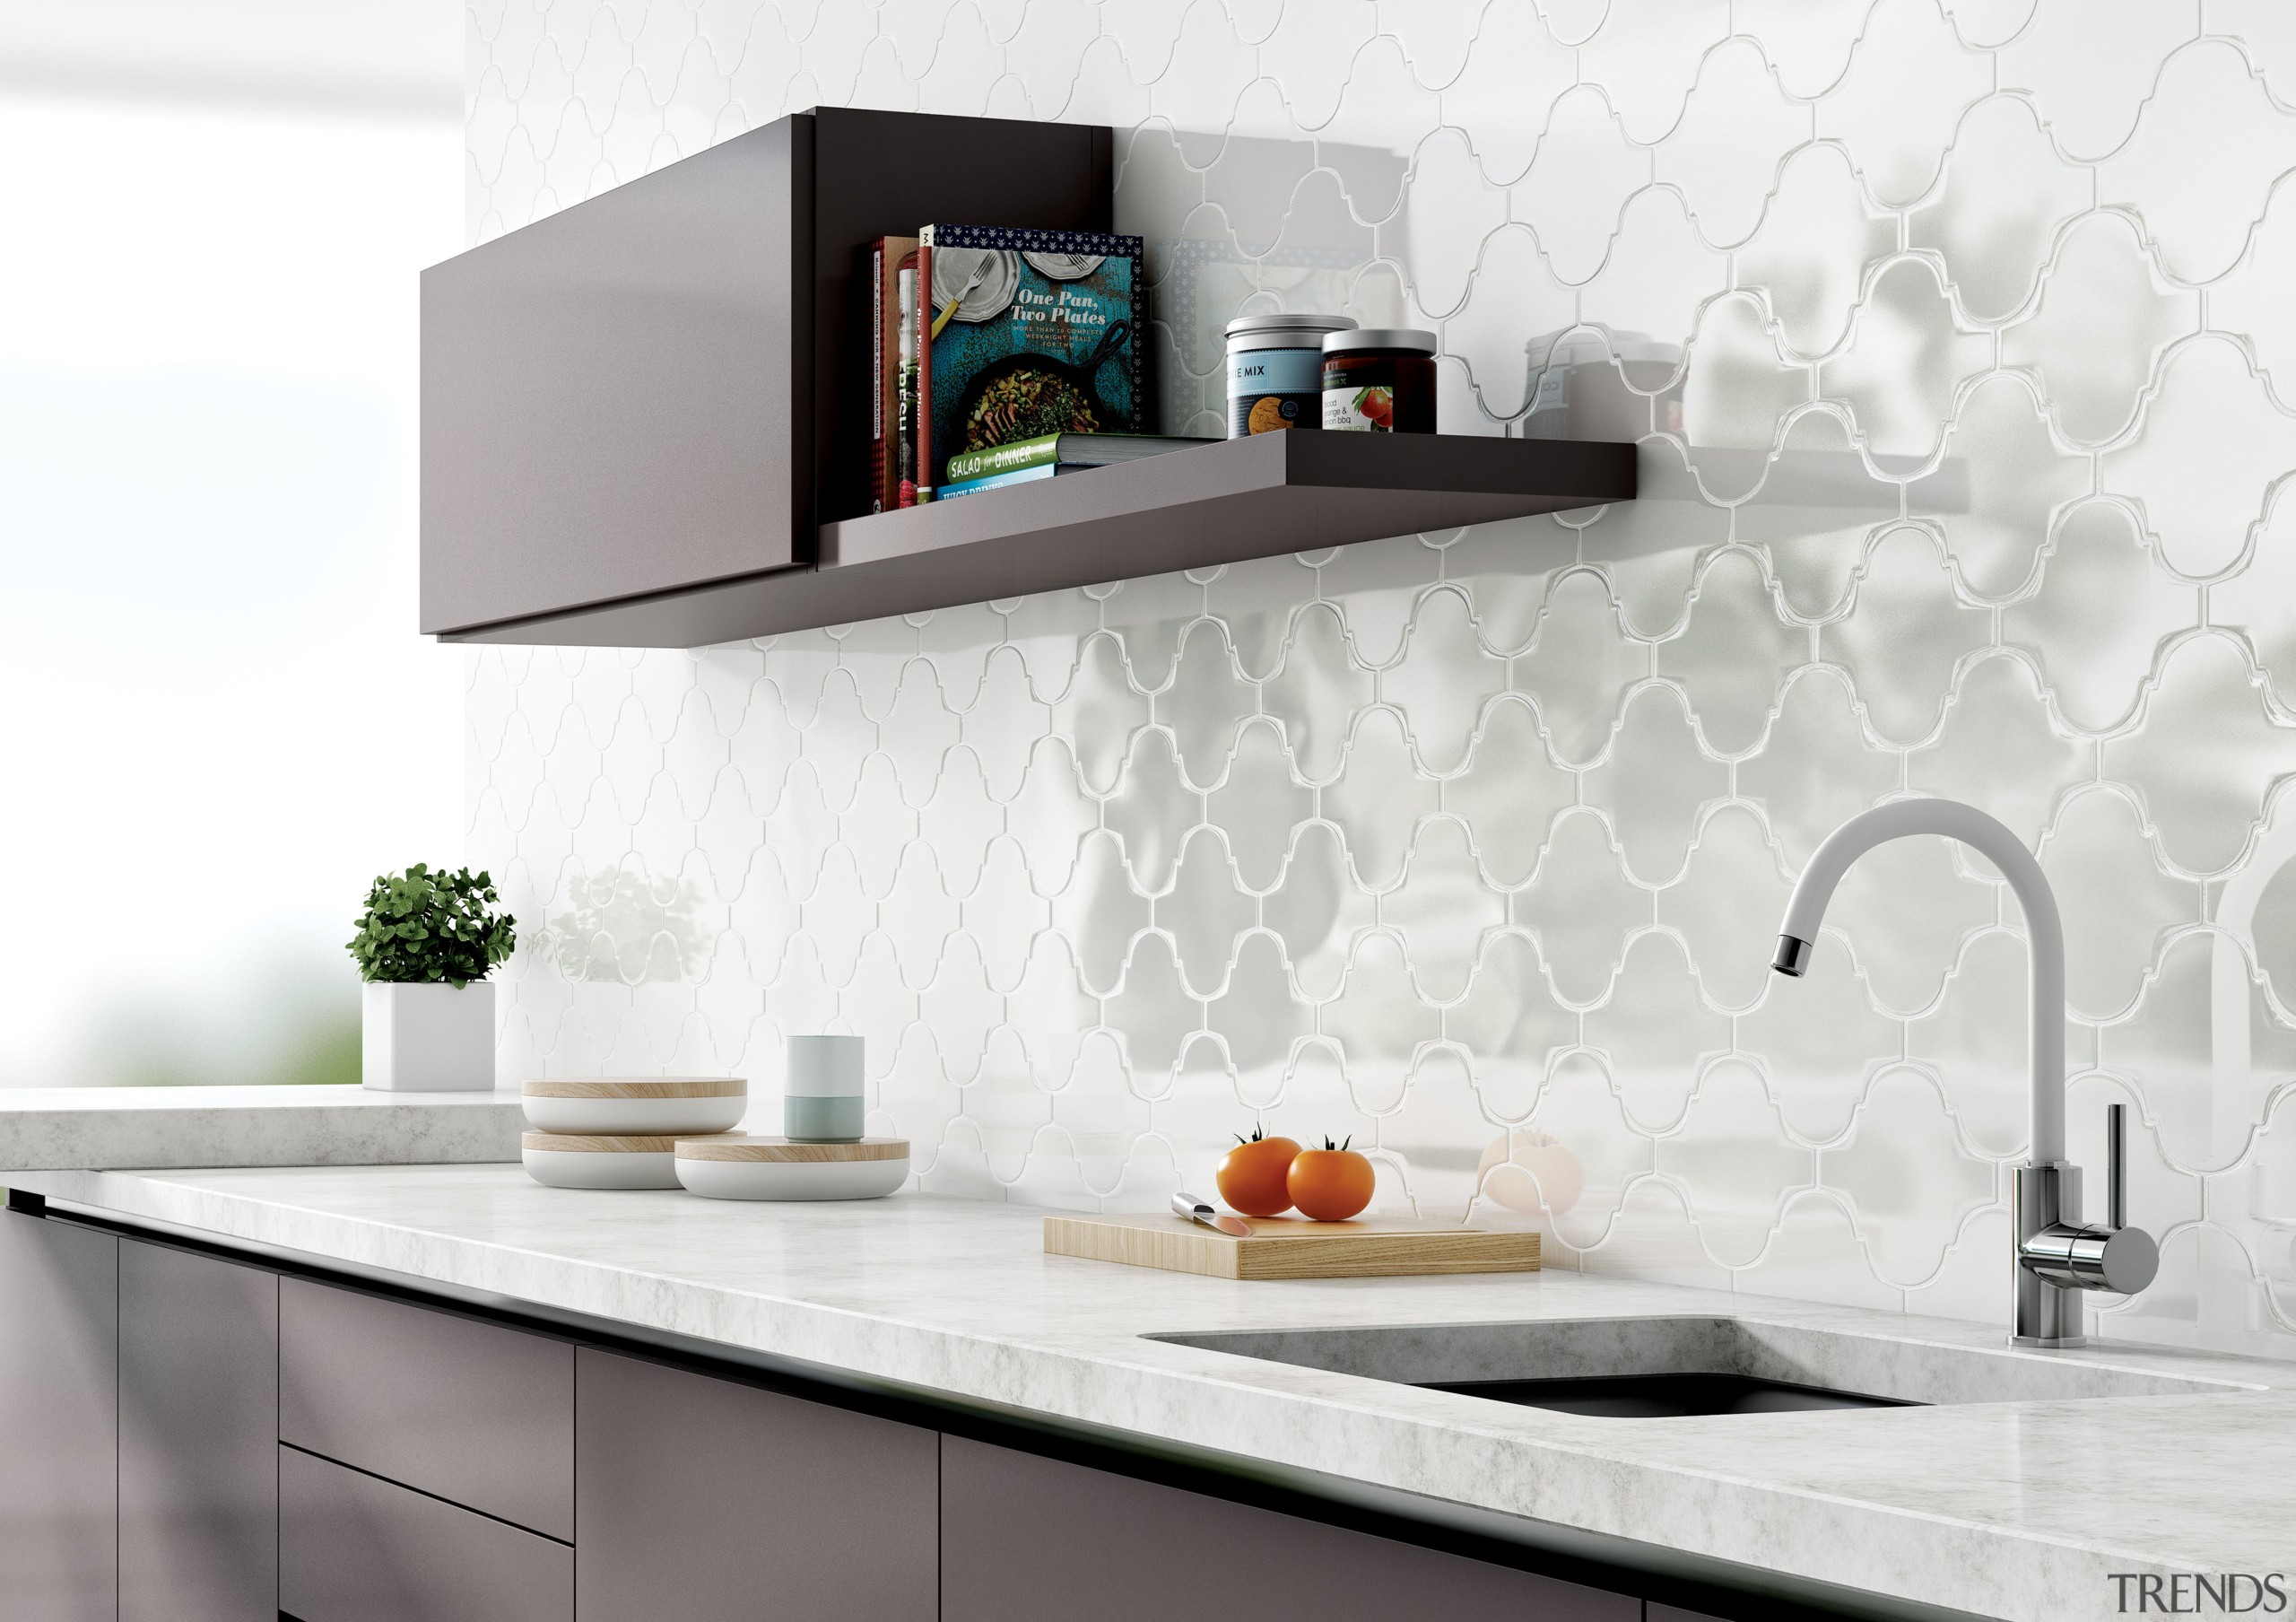 This Turkish-inspired tile from Tile Trends typifies a countertop, furniture, interior design, kitchen, product design, shelf, shelving, table, tap, wall, white